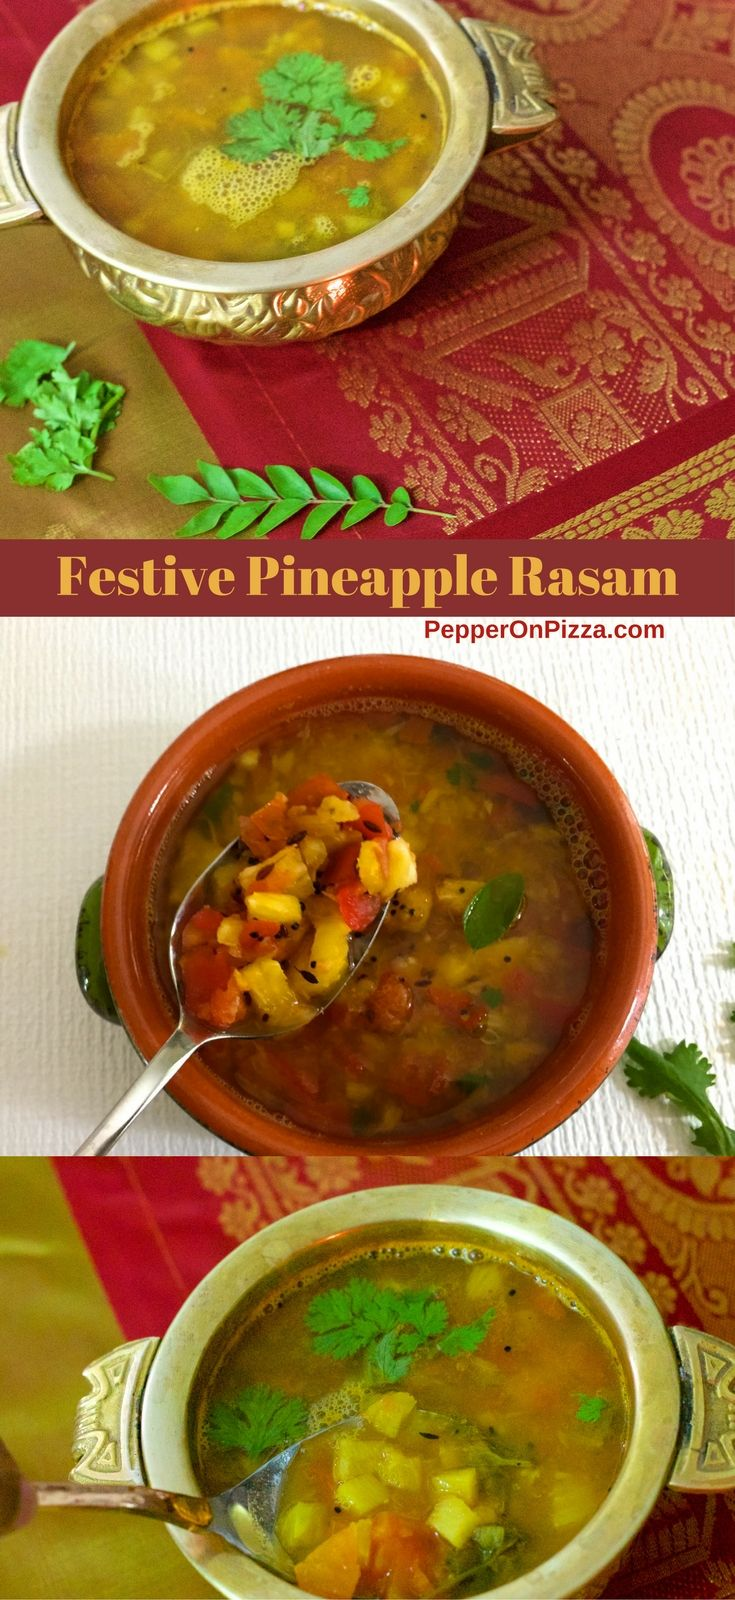 Festive Pineapple Rasam a tangy South Indian Pineapple Lentil Soup served with rice, papad and sautéed vegetable curry. Popular at Tamilian wedding lunches via @sujatashukla